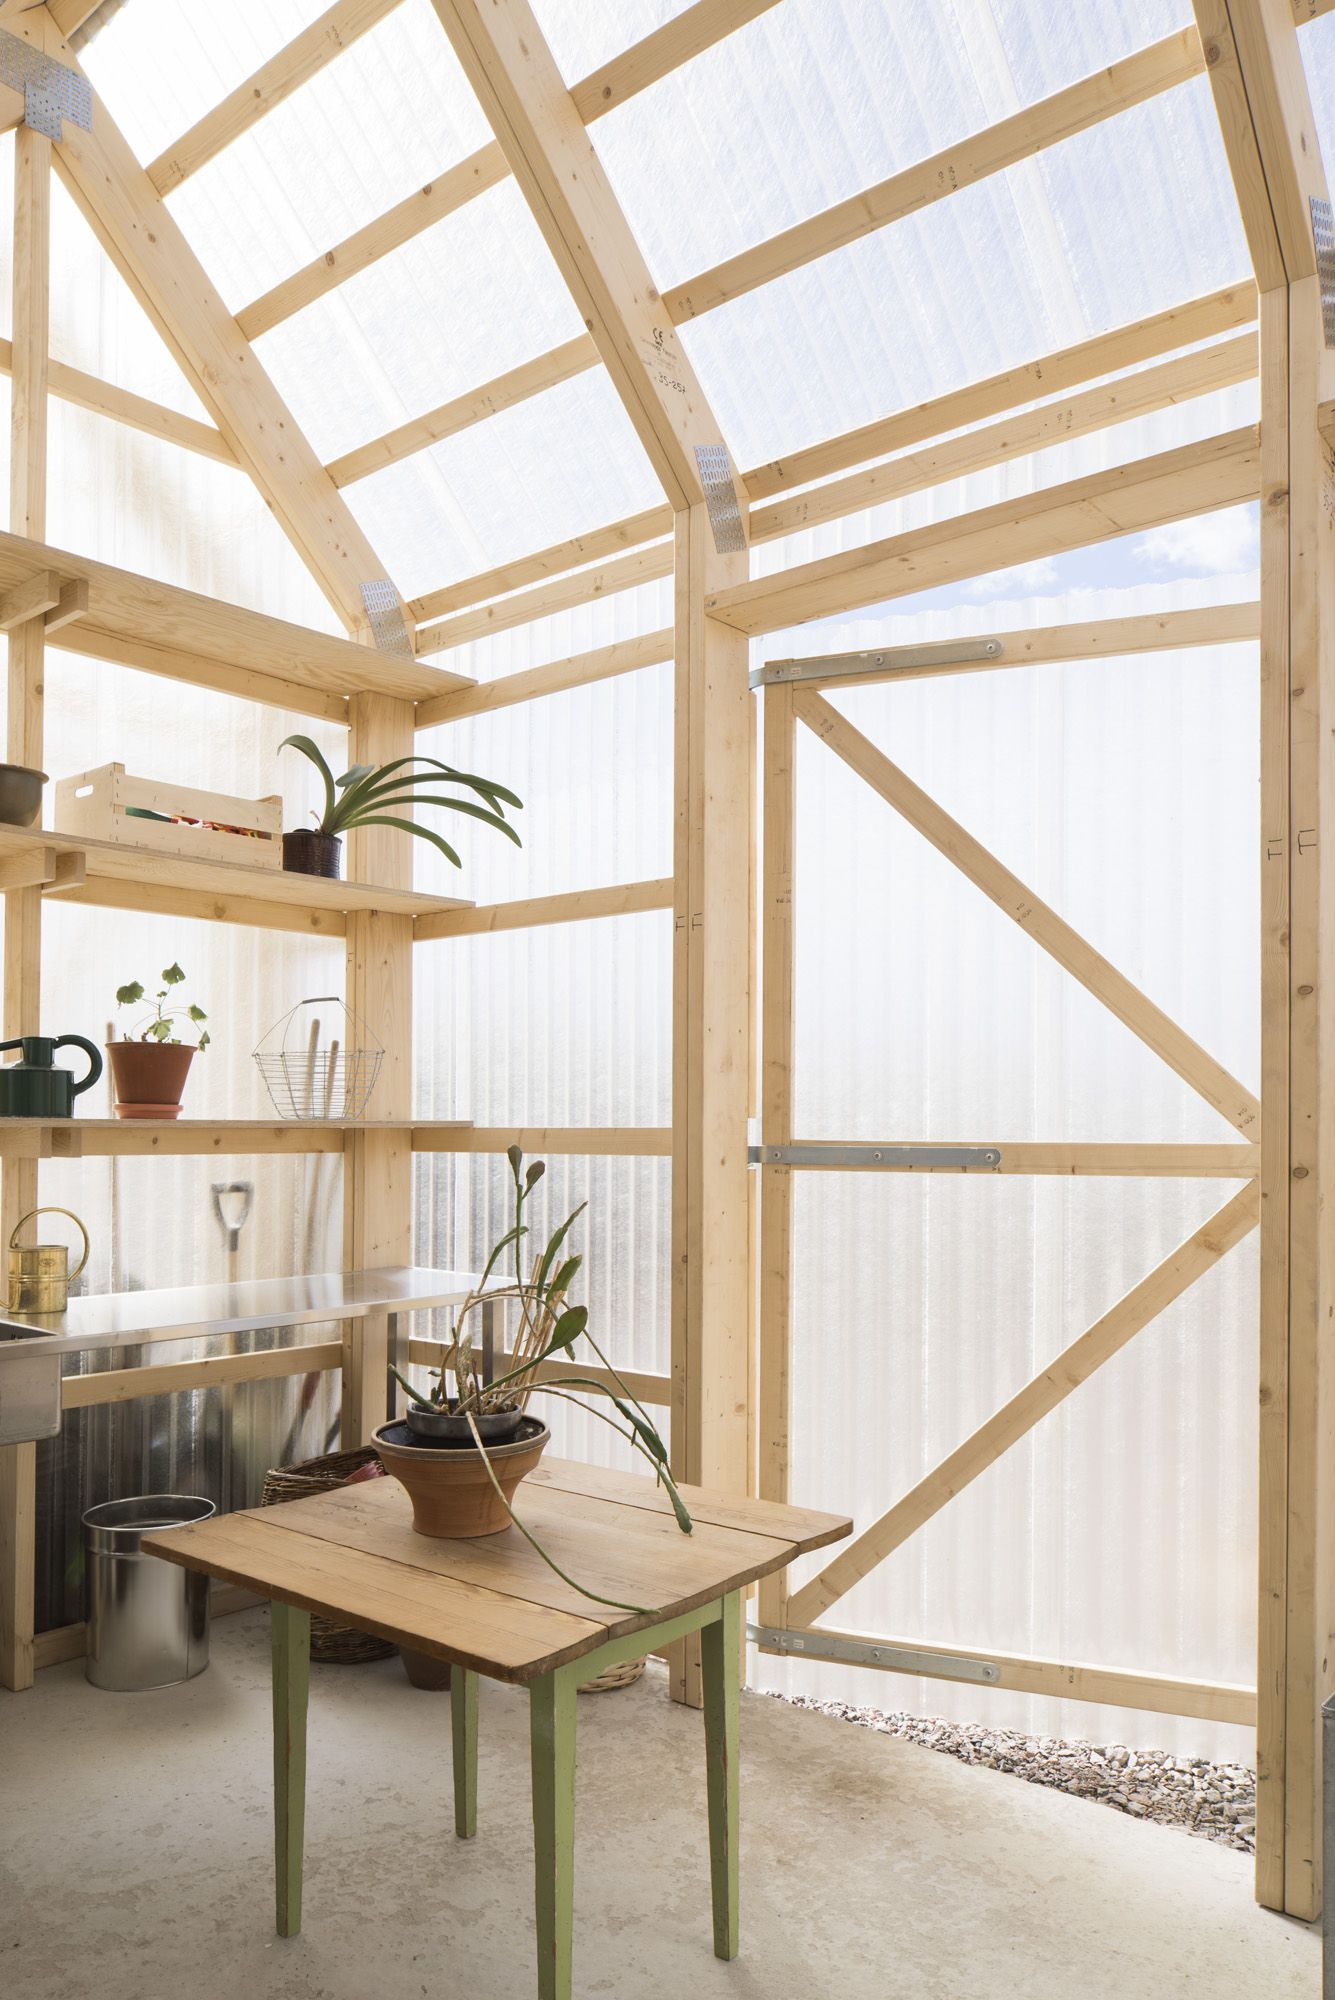 A greenhouse with translucent corrugated polycarbonate walls and exposed wood frame in forstberg lings house for mother sweden